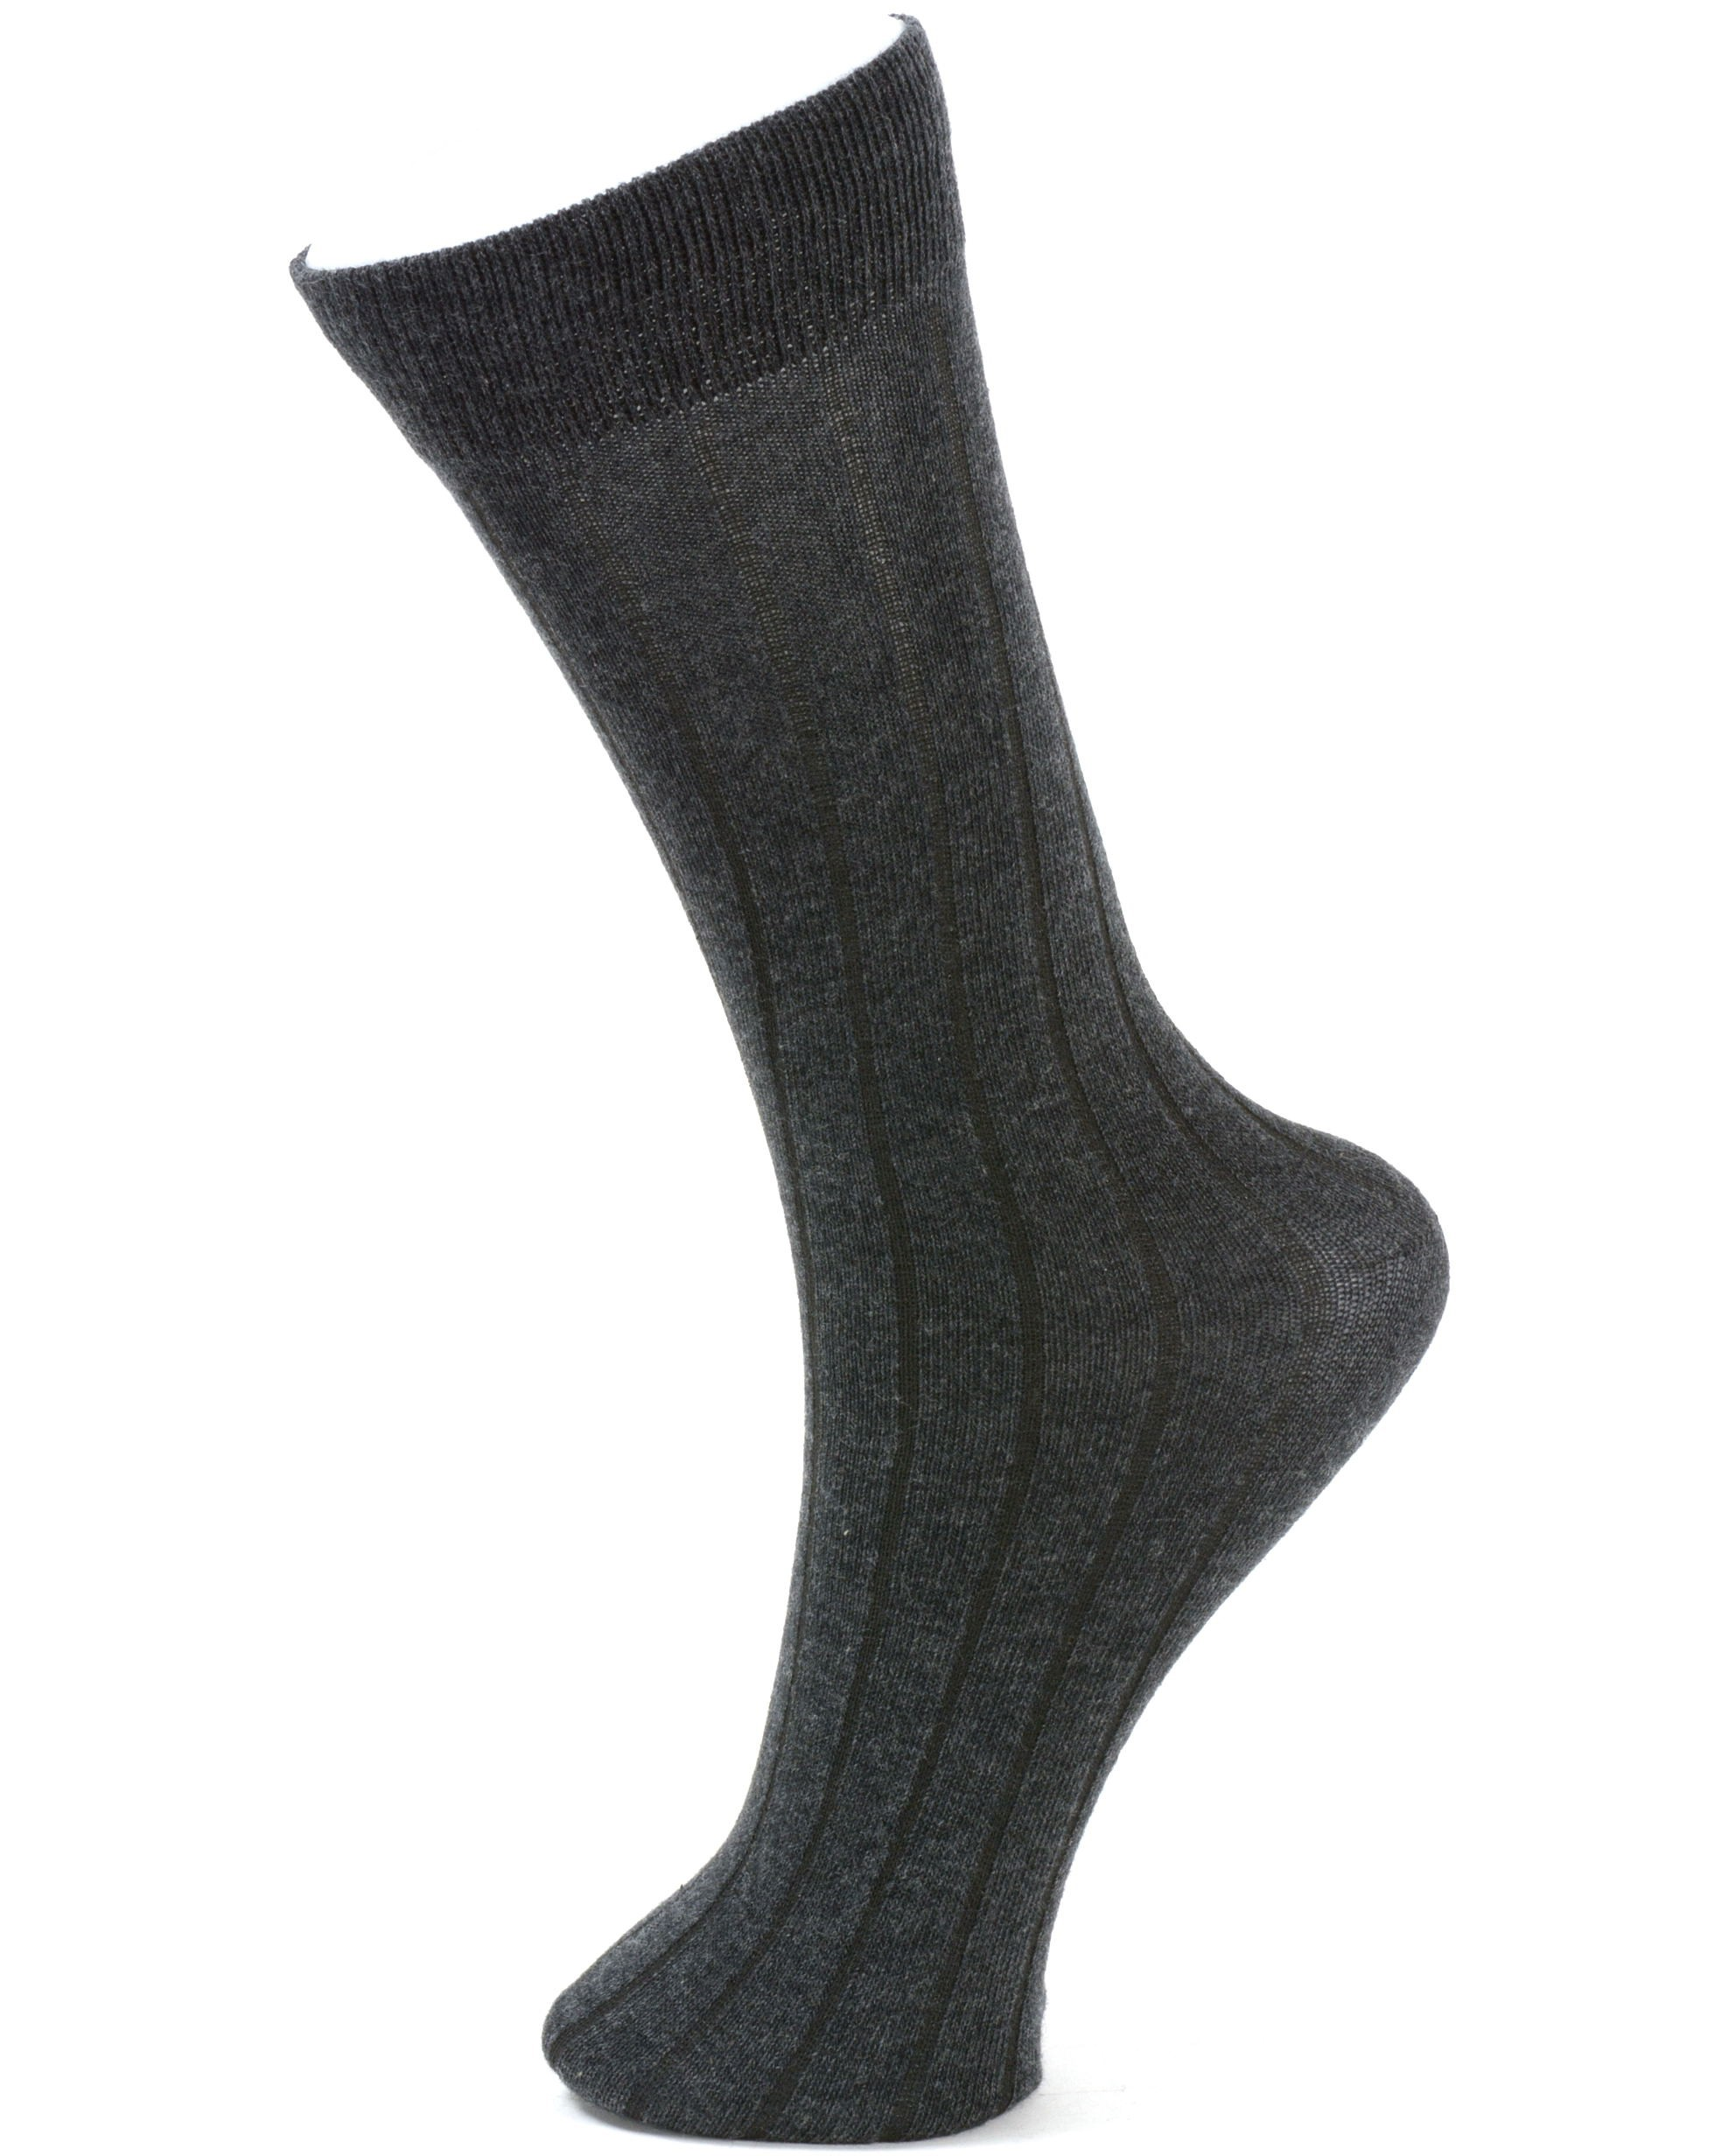 Alpine-Swiss-6-Pack-Men-039-s-Cotton-Dress-Socks-Mid-Calf-Argyle-Pattern-Solids-Set